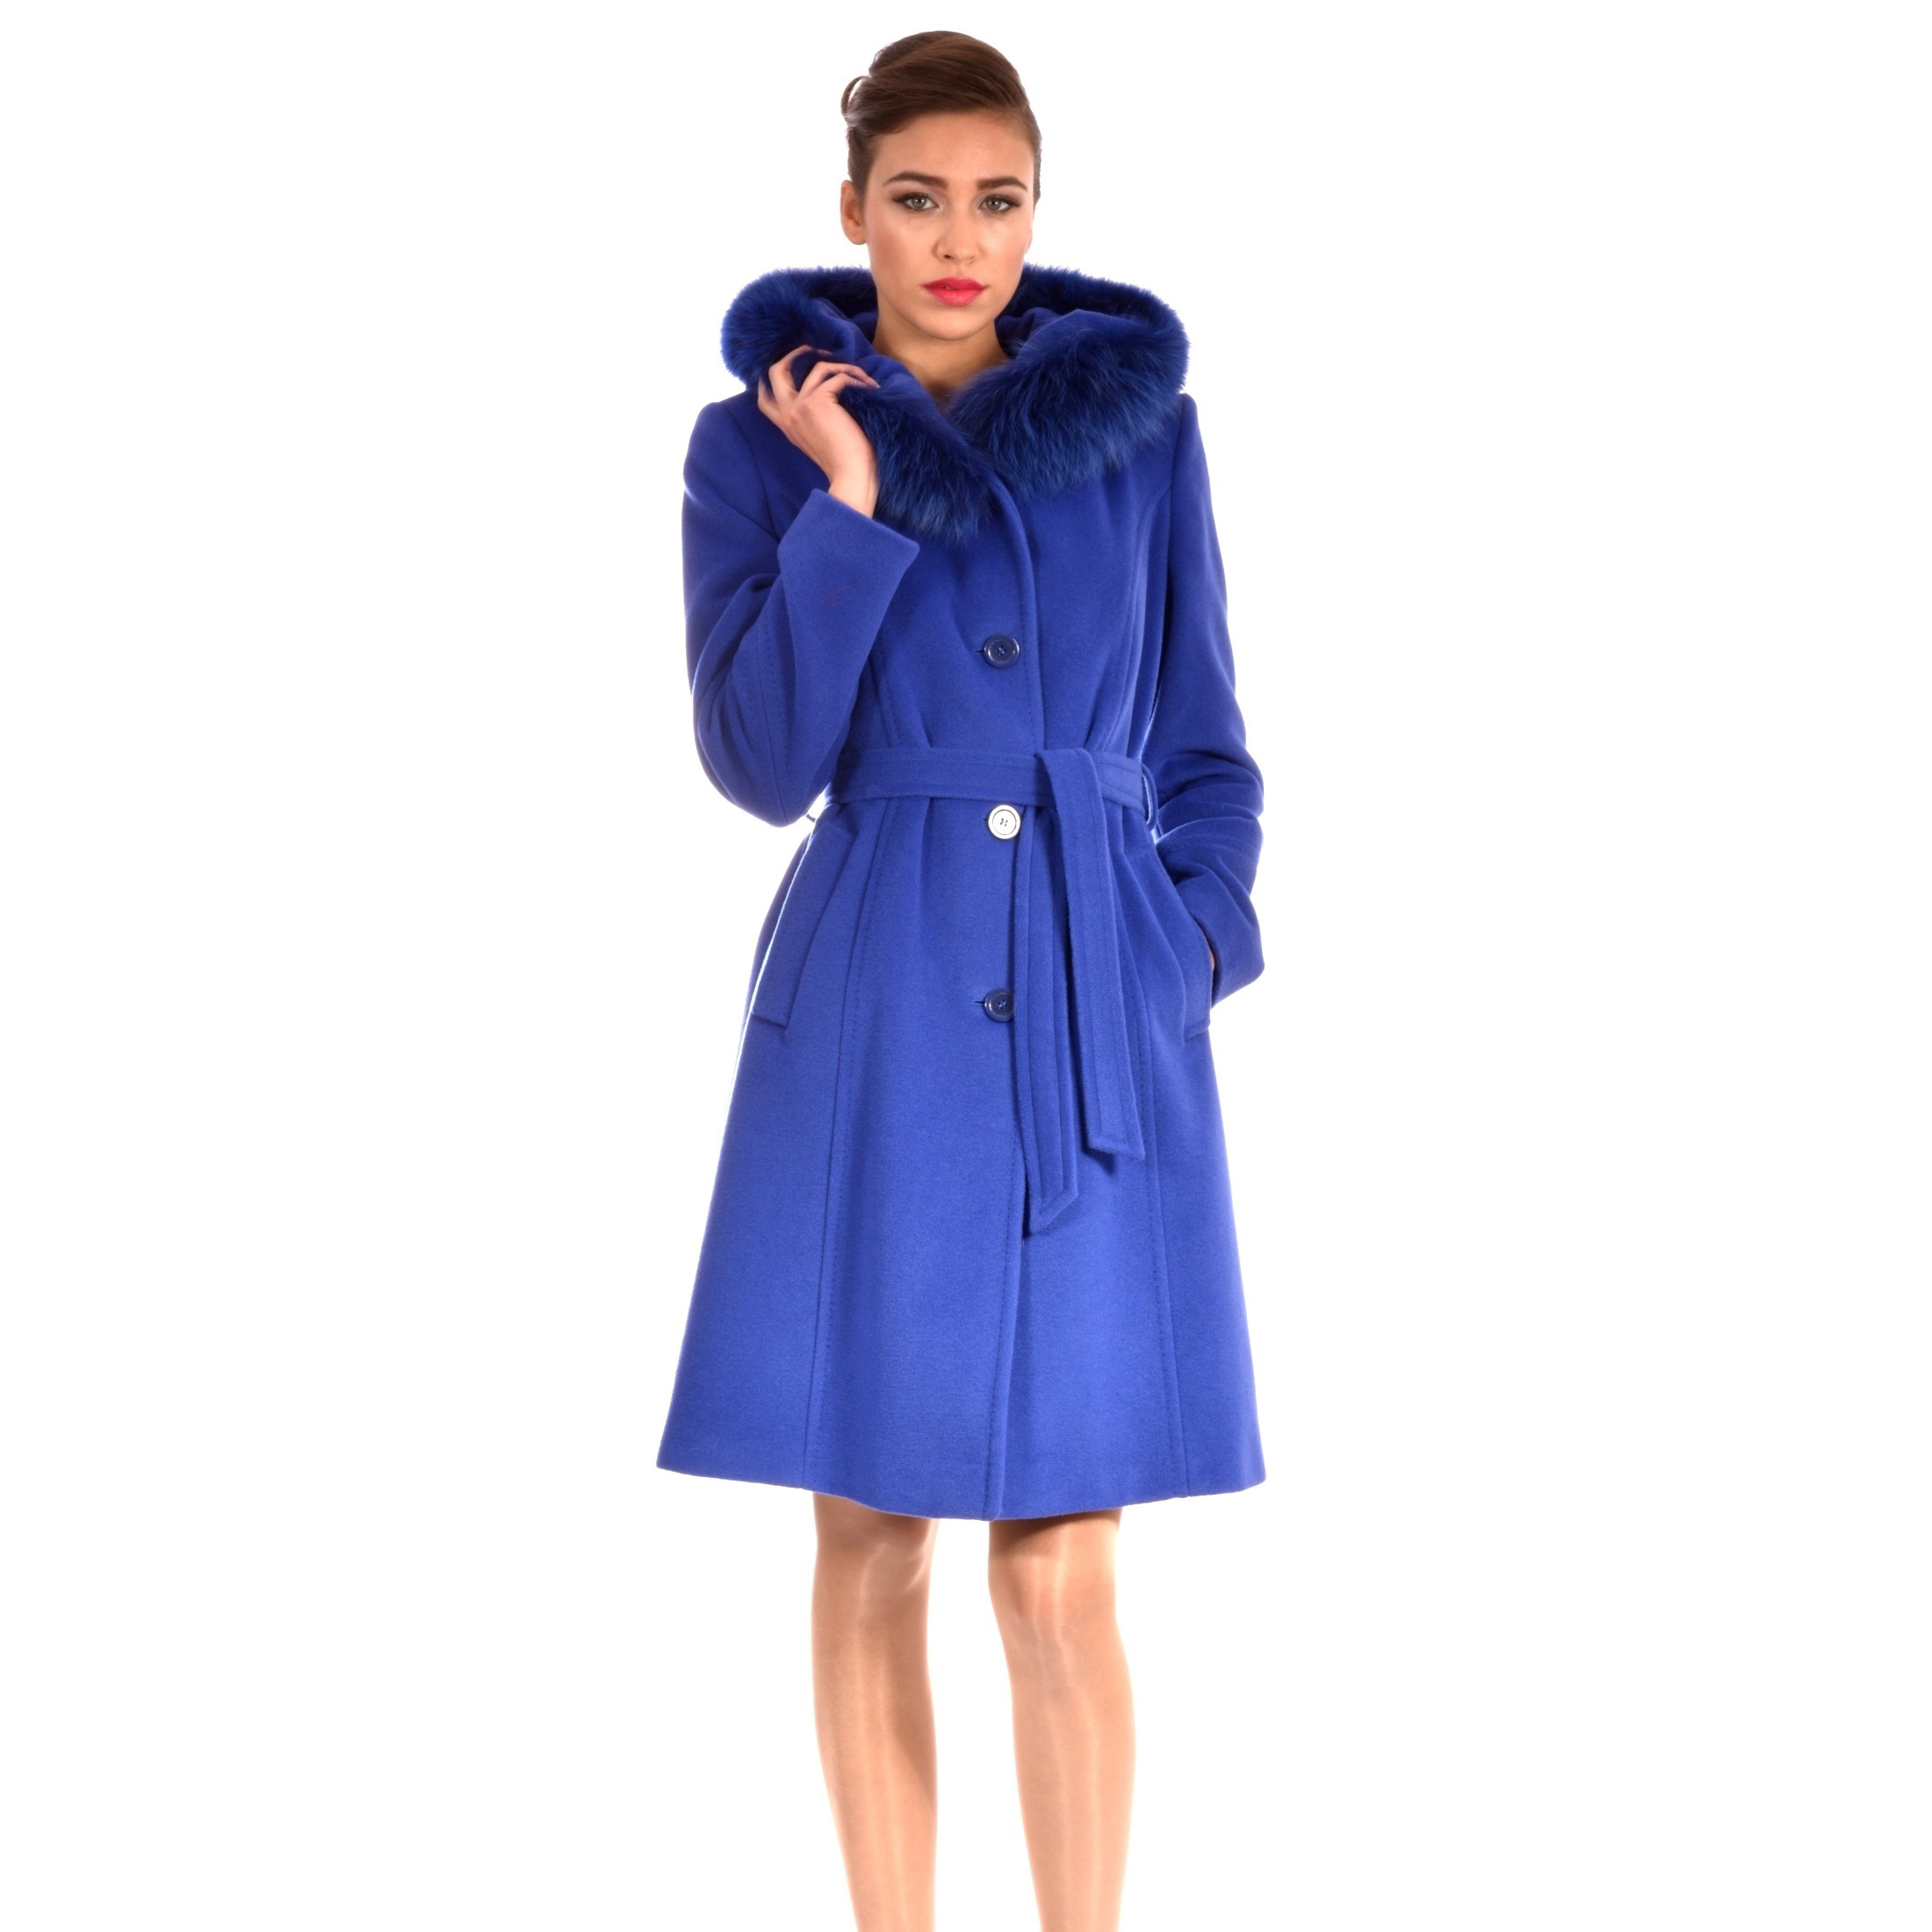 Blue women's coat made of wool and cashmere.